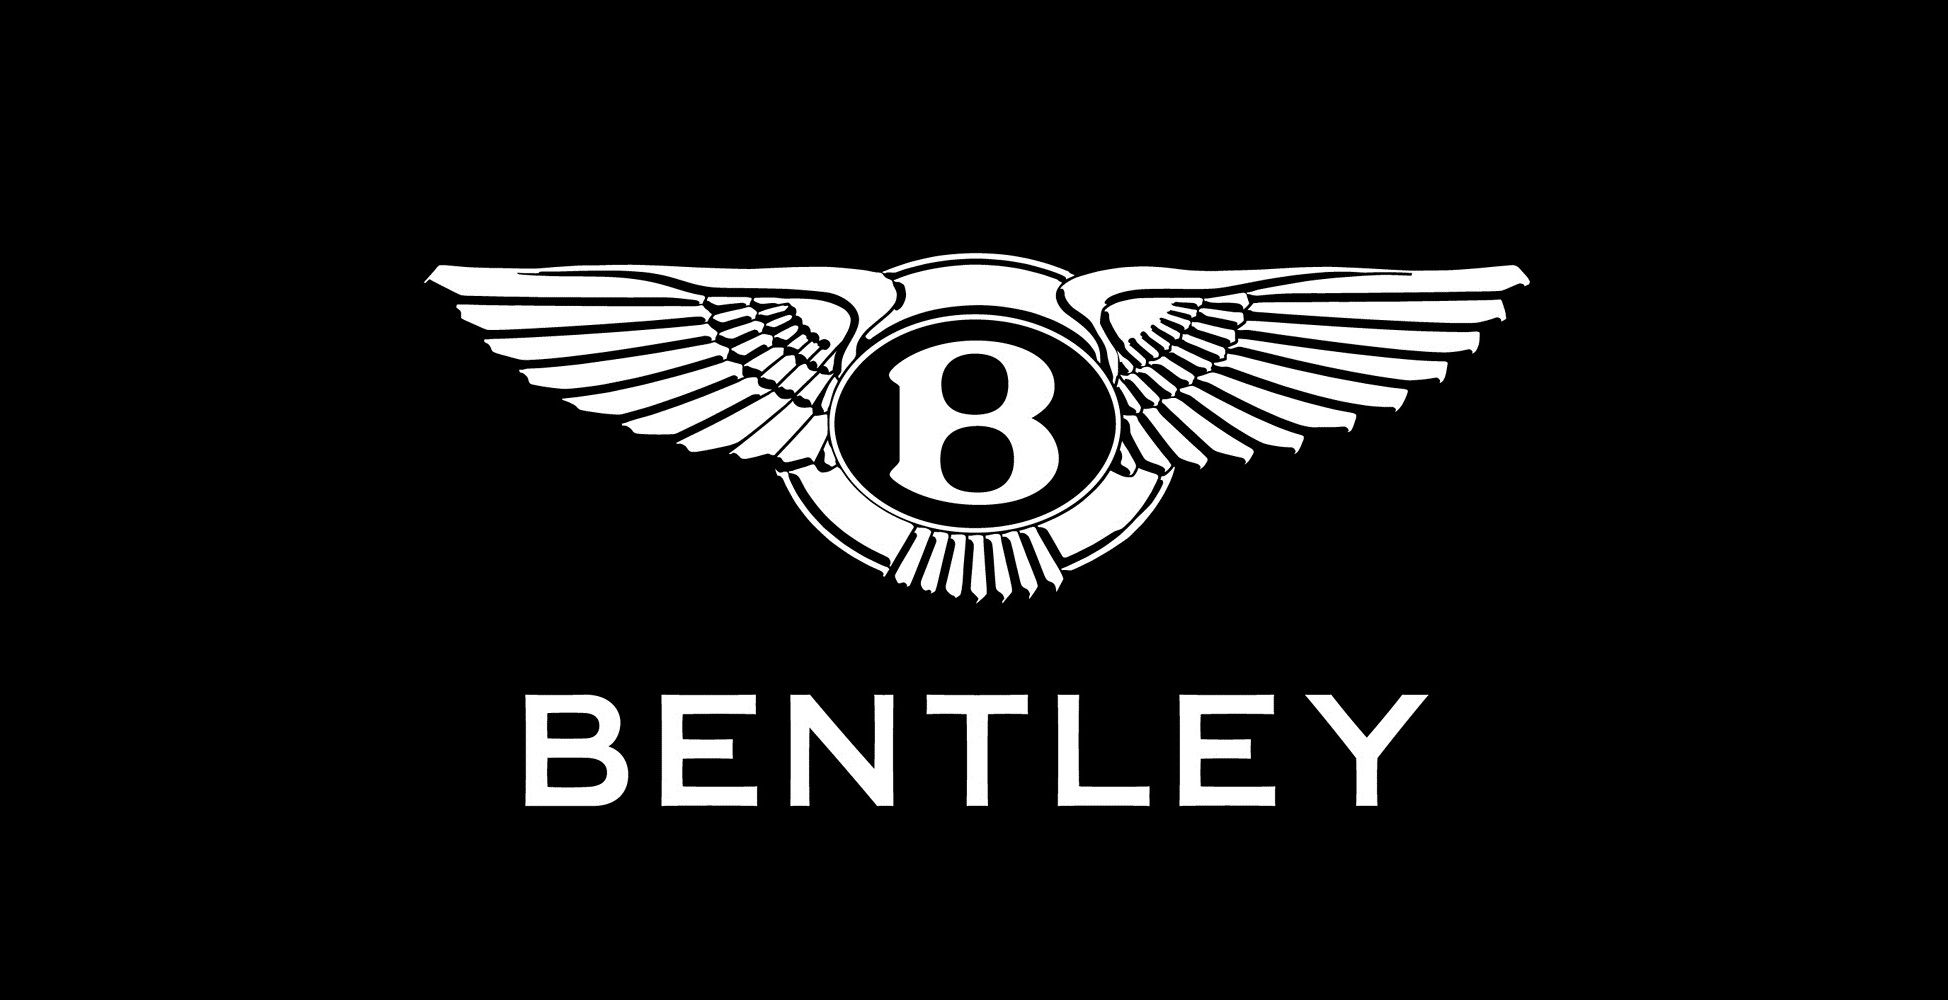 bentley logo hd Google Search Logo Matsuri Pinterest